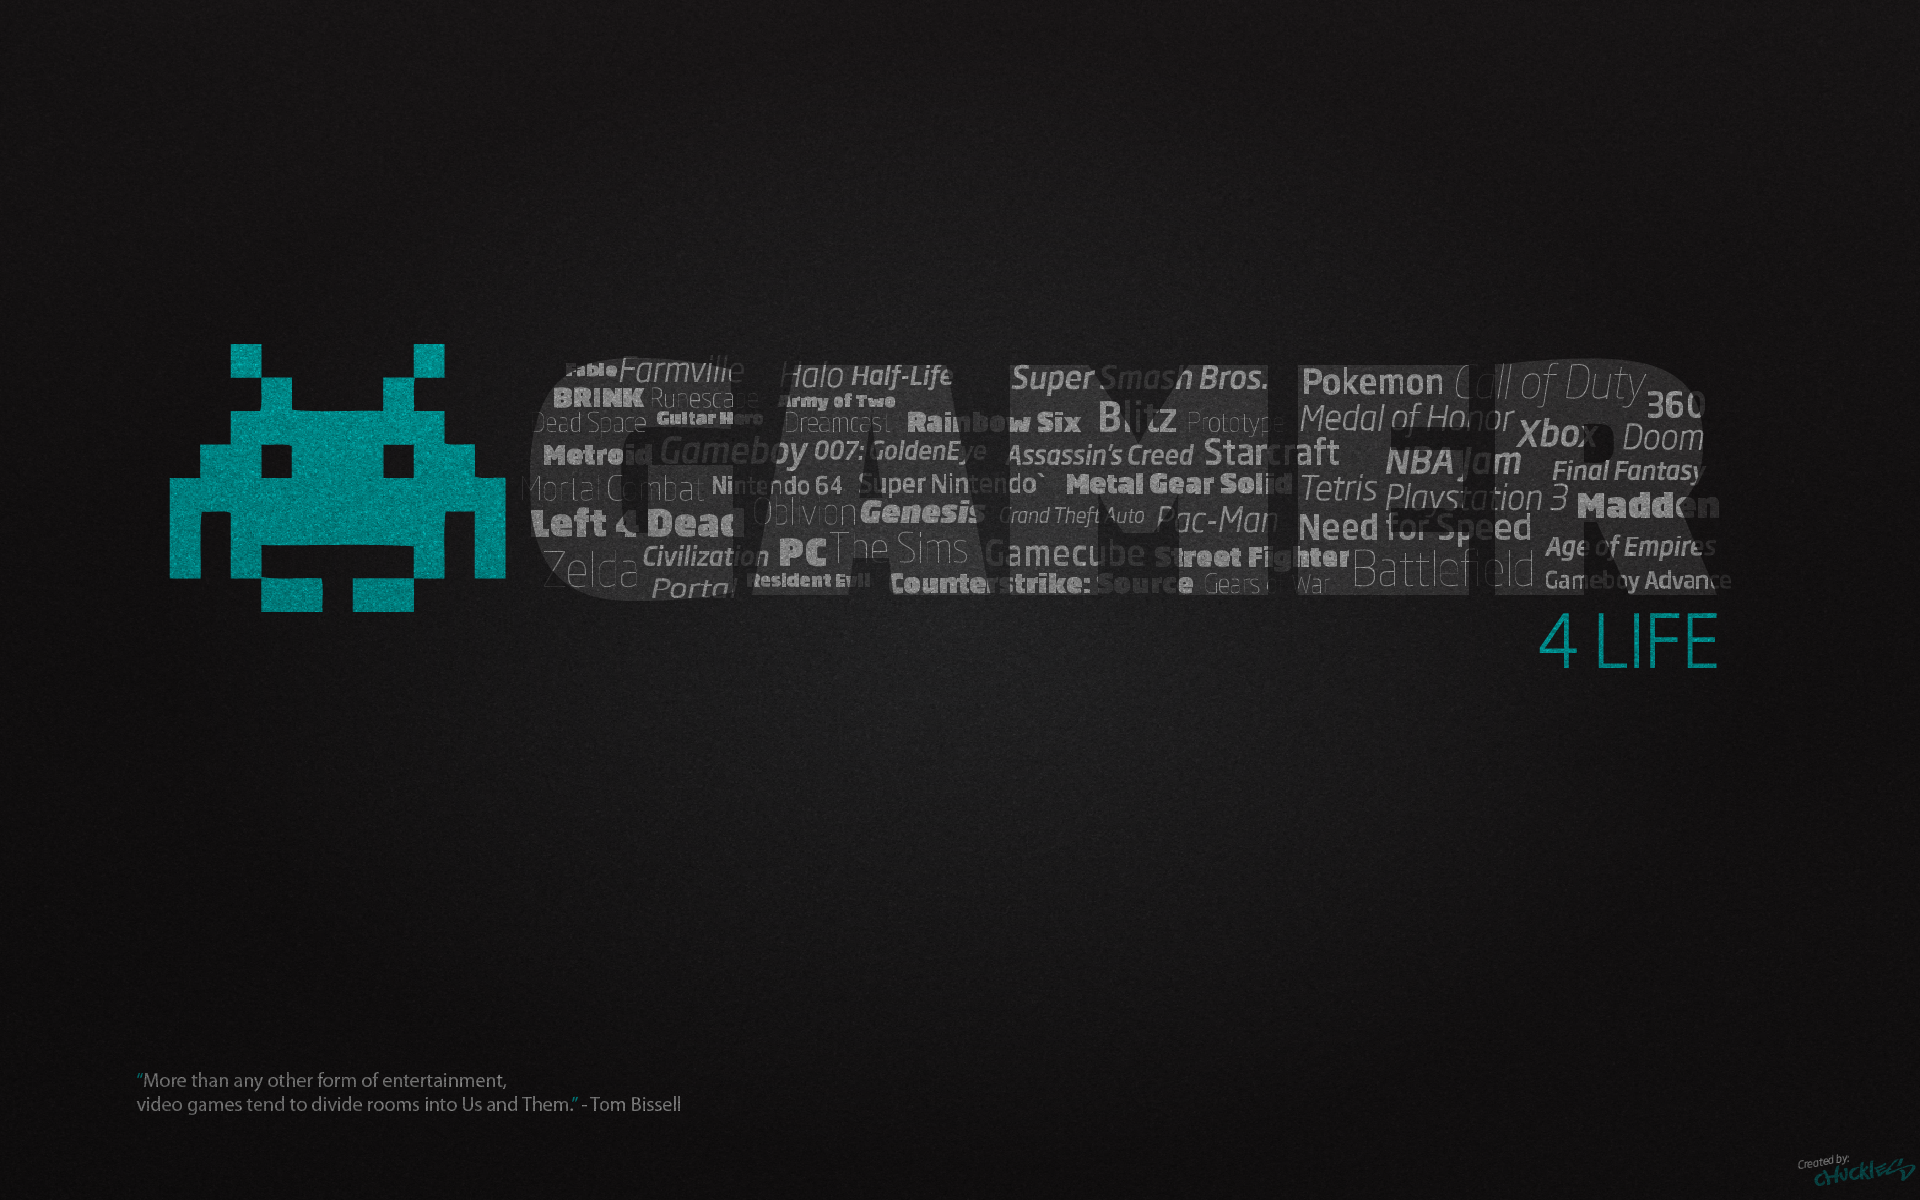 i am a Gamer Wallpaper 1920x1080 images  Hdimagelib